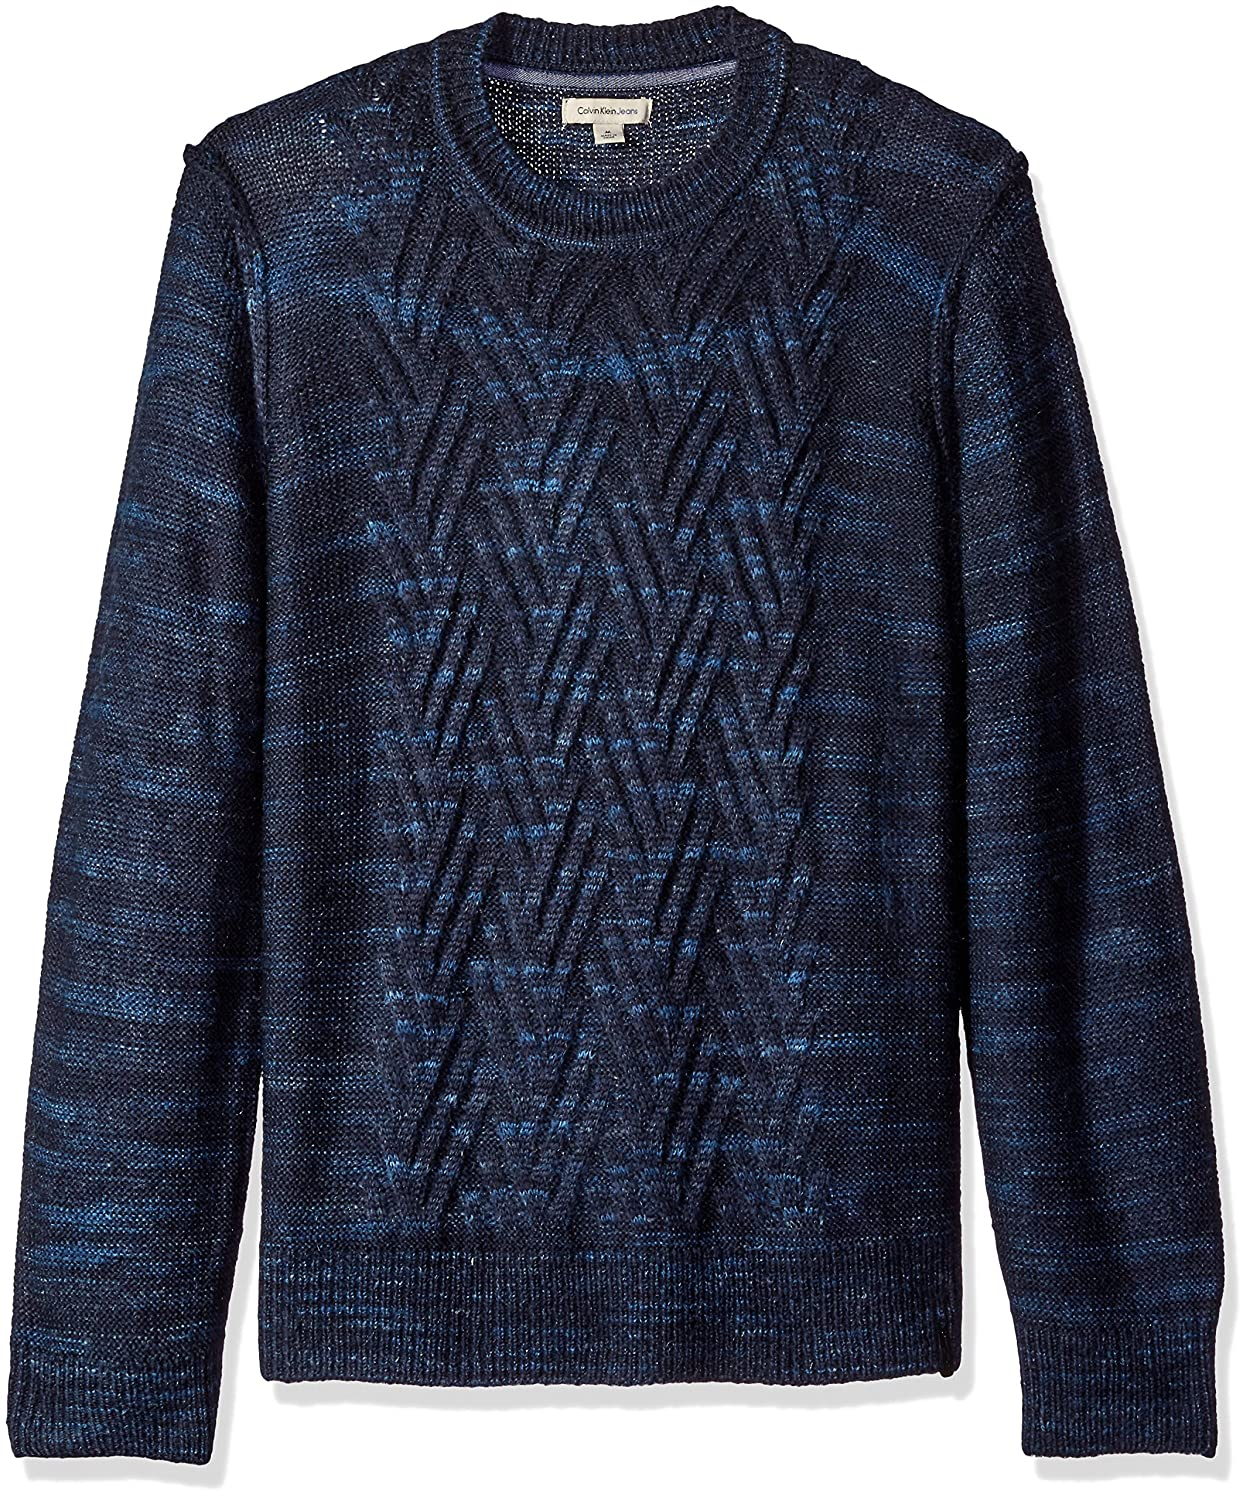 d5fa0bb36d Pair with CK jeans for a casual modern look or dress this sweater ...